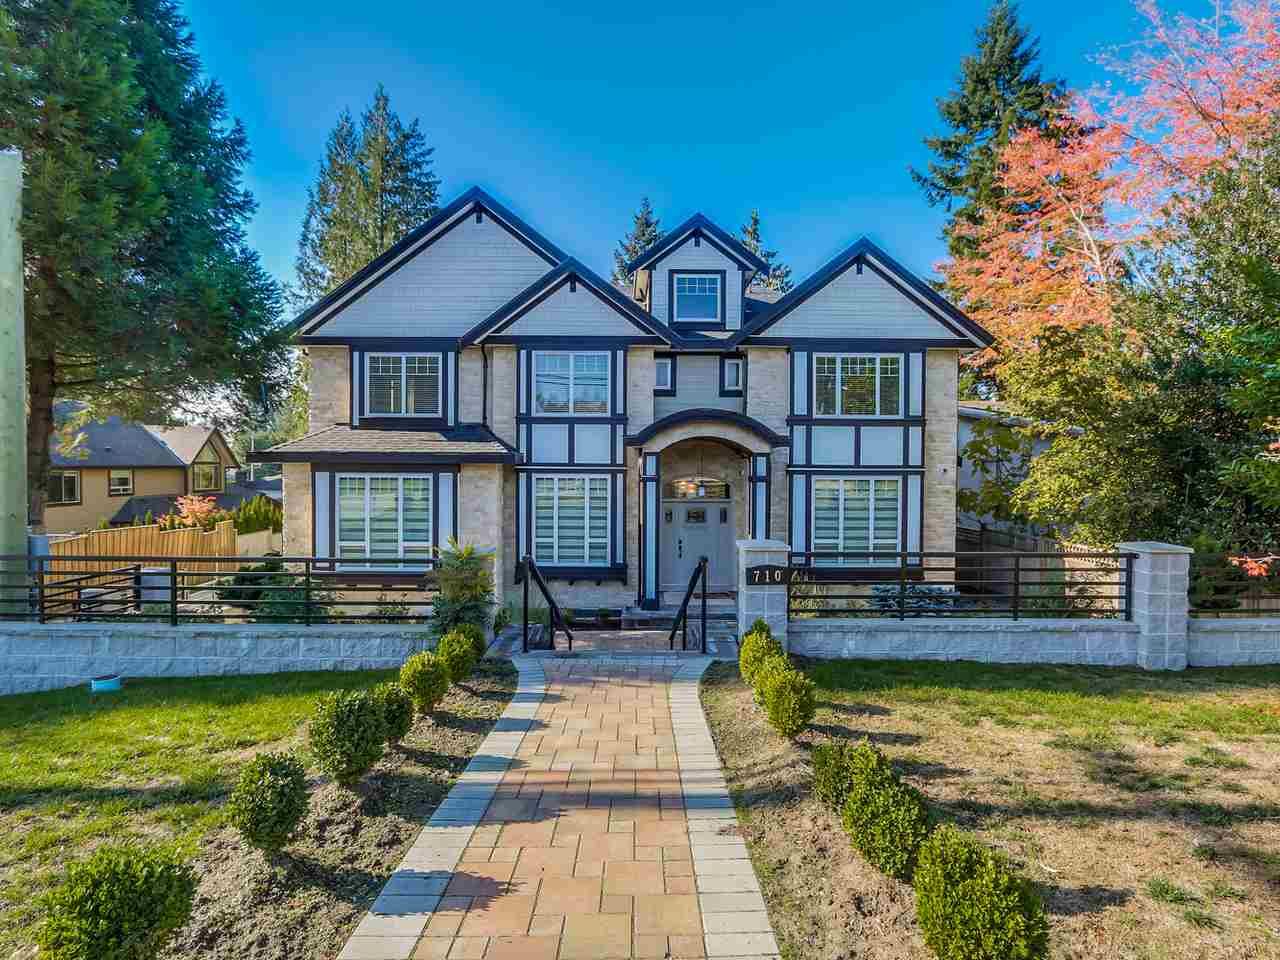 Main Photo: 710 POIRIER Street in Coquitlam: Central Coquitlam House for sale : MLS® # R2009770